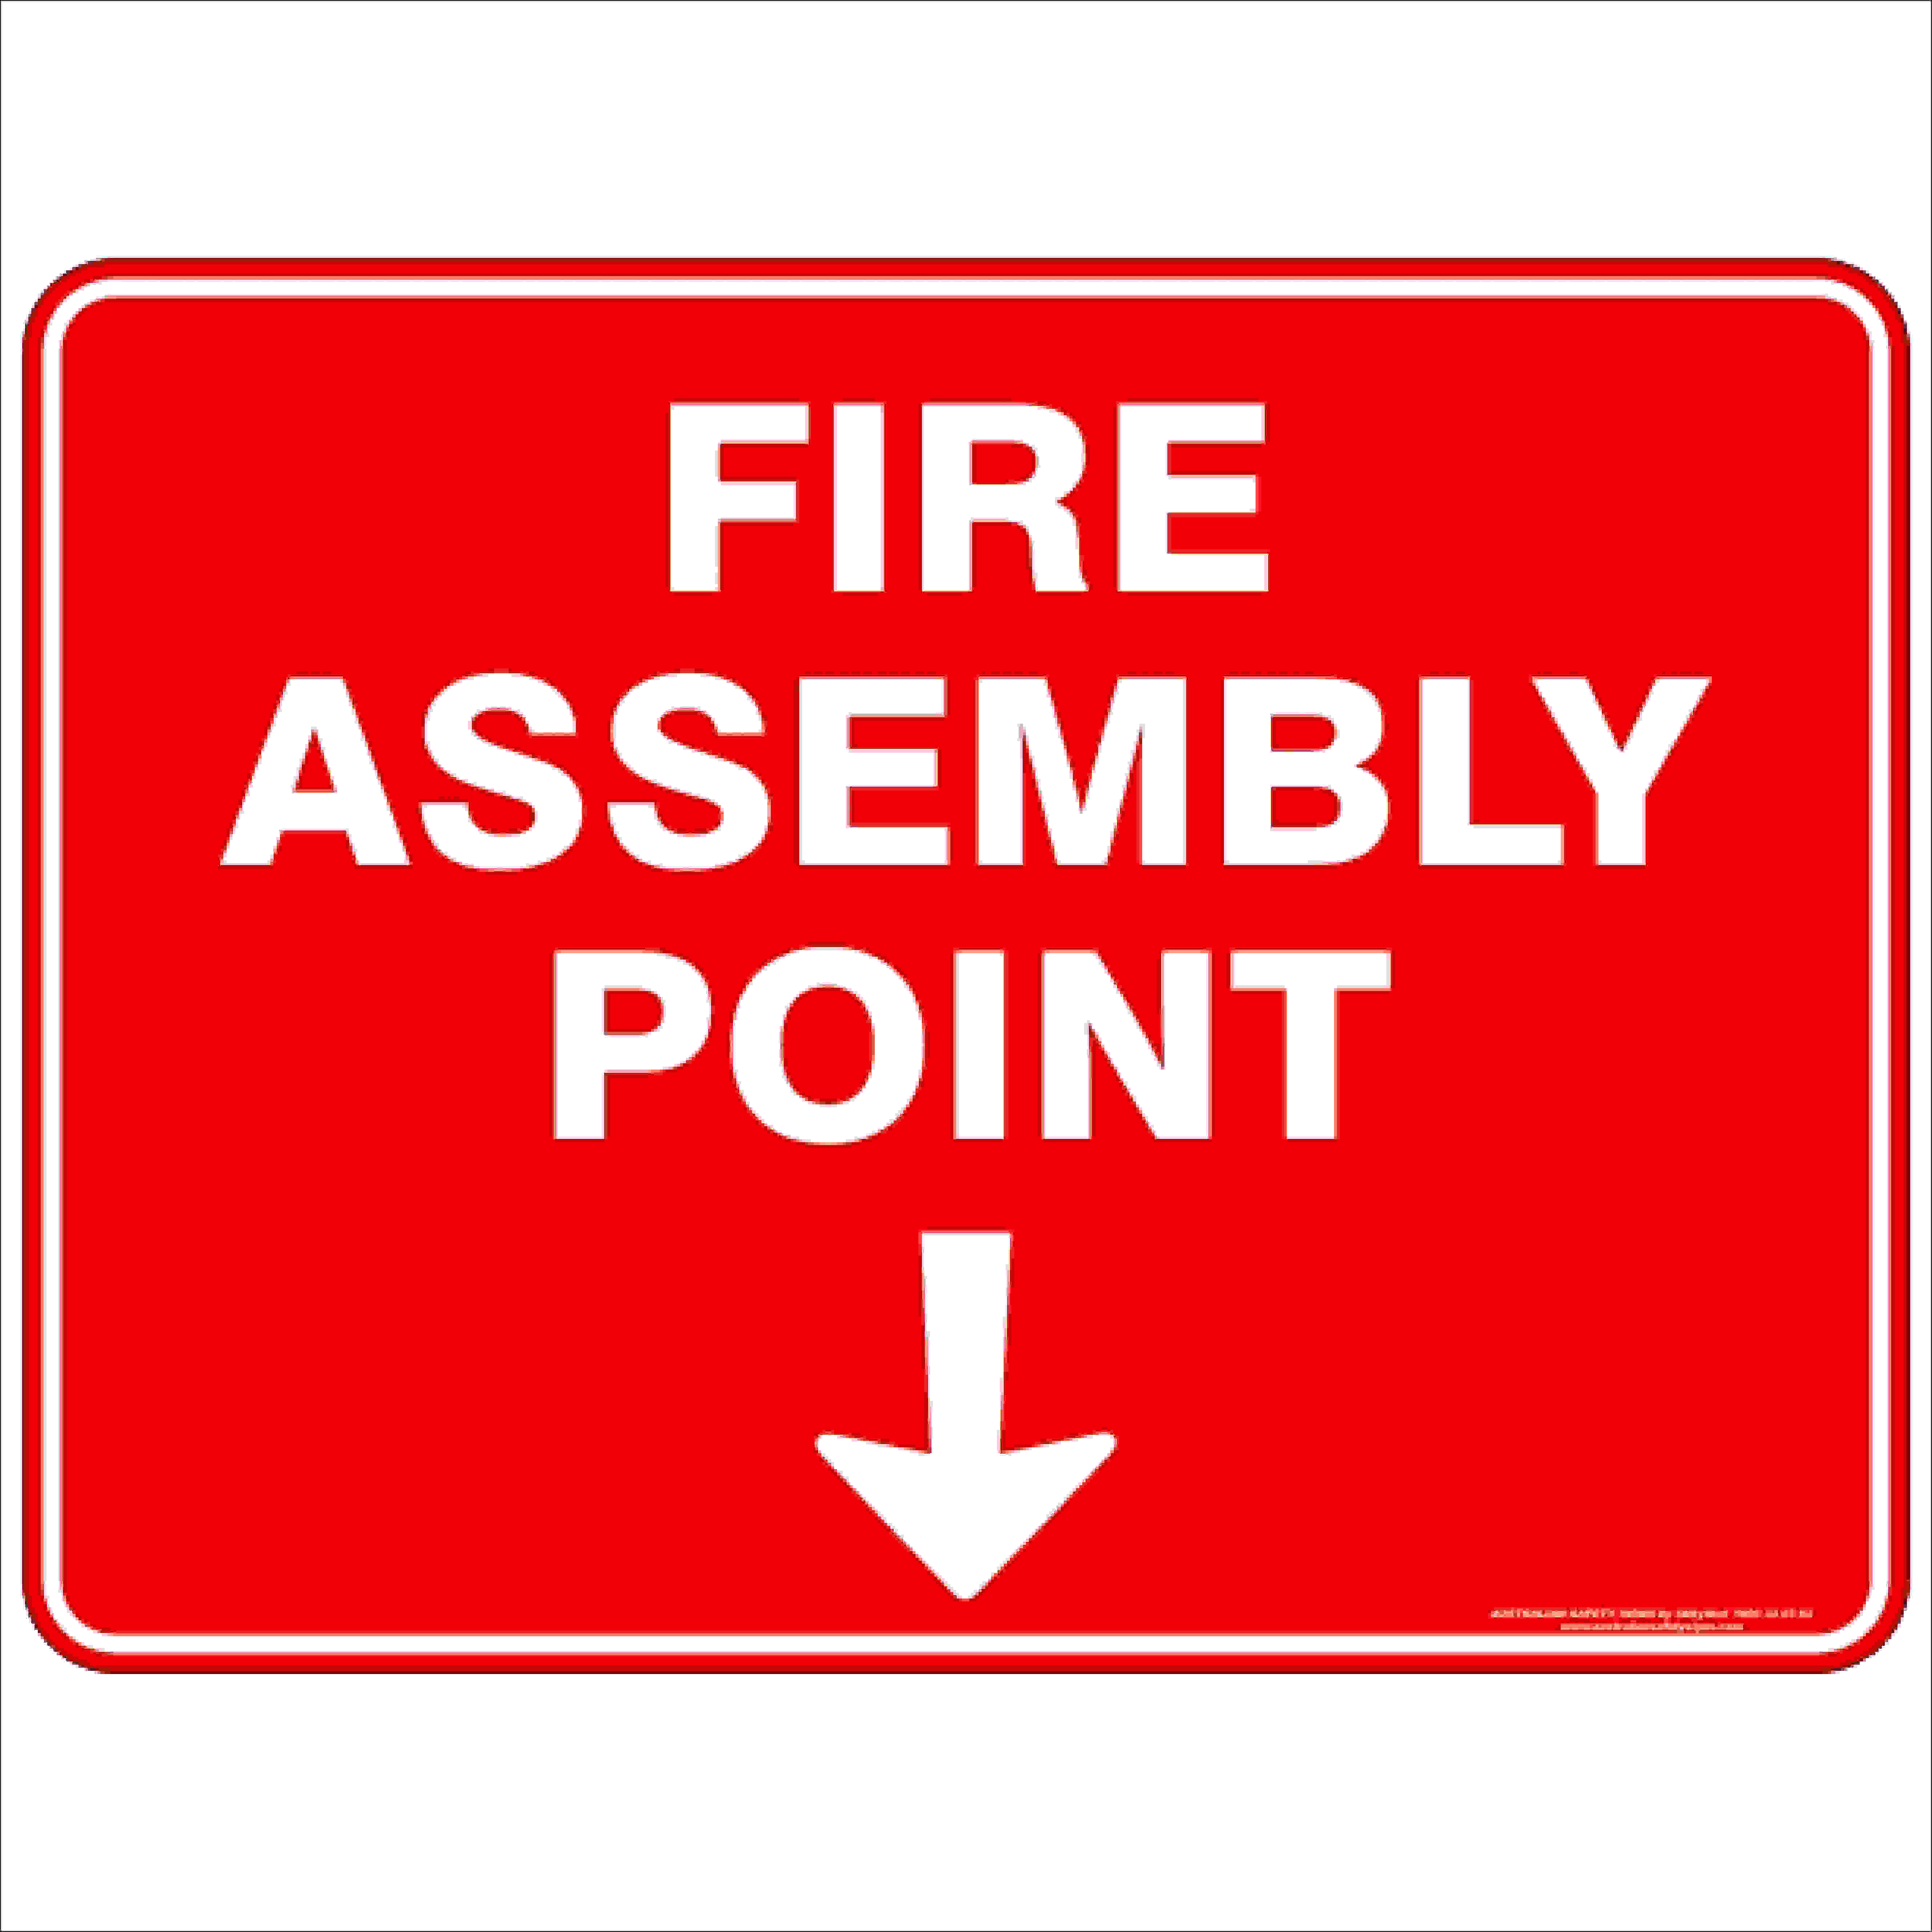 Fire Assembly Point  Discount Safety Signs New Zealand. Schizophrenia Signs. Popcorn Signs. Hypotension Signs. Loss Signs Of Stroke. Left Turn Signs. Tissue Plasminogen Activator Signs Of Stroke. Stroke Test Signs. Crafty Signs Of Stroke